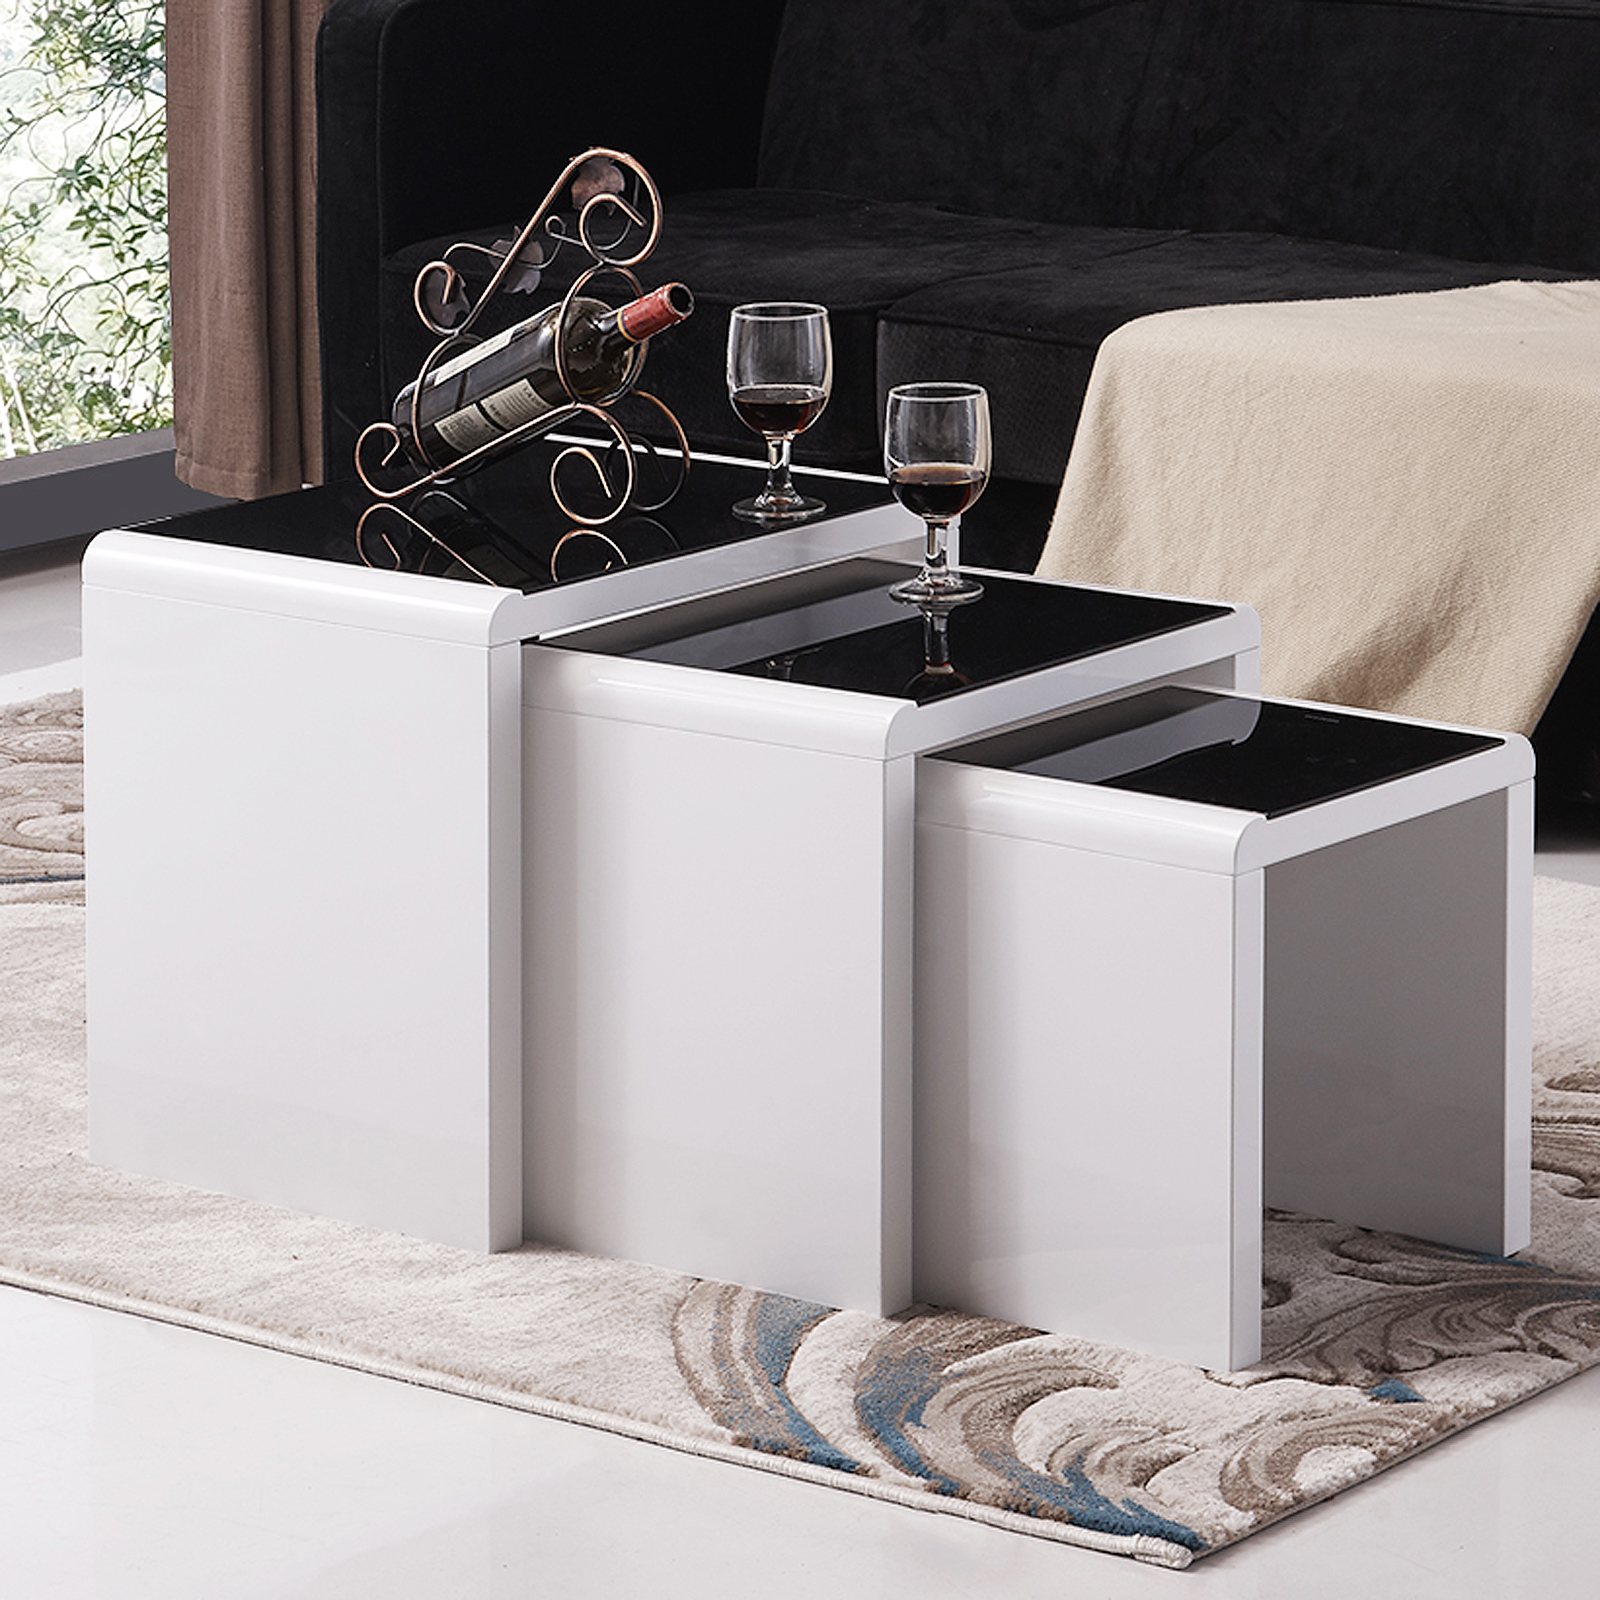 High Gloss White Coffee Table Round Angle Black Glass Top: Nest Of 3 Coffee Table White & Black Glass Modern Design